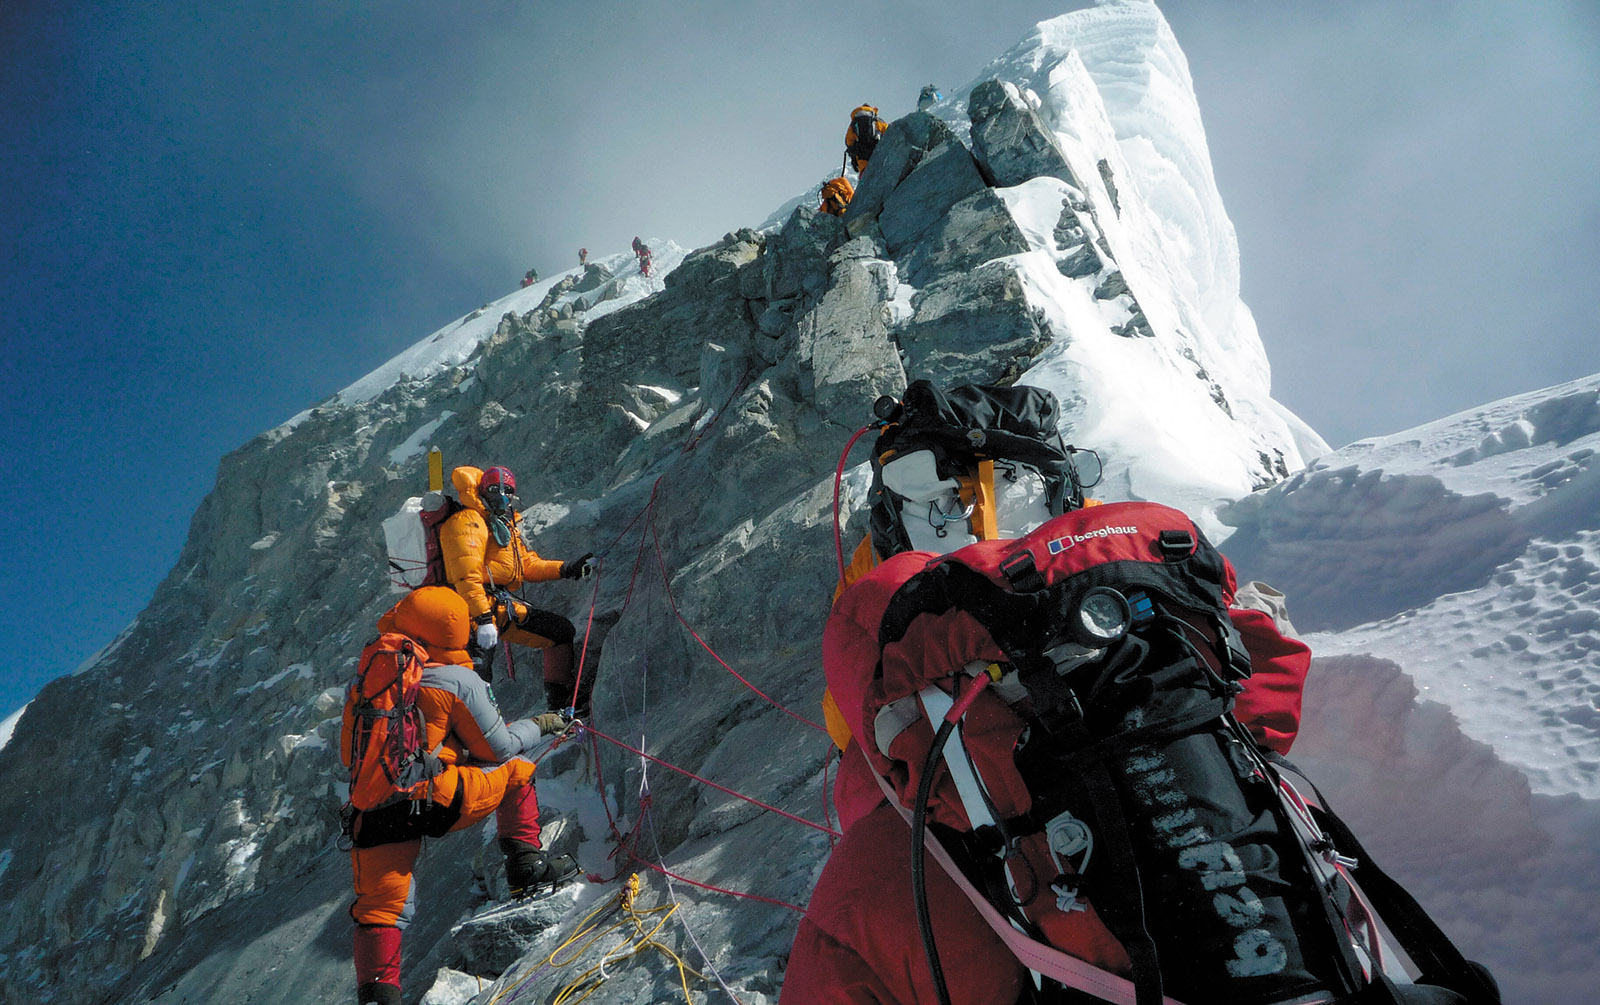 Climbers approaching the summit of Mount Everest